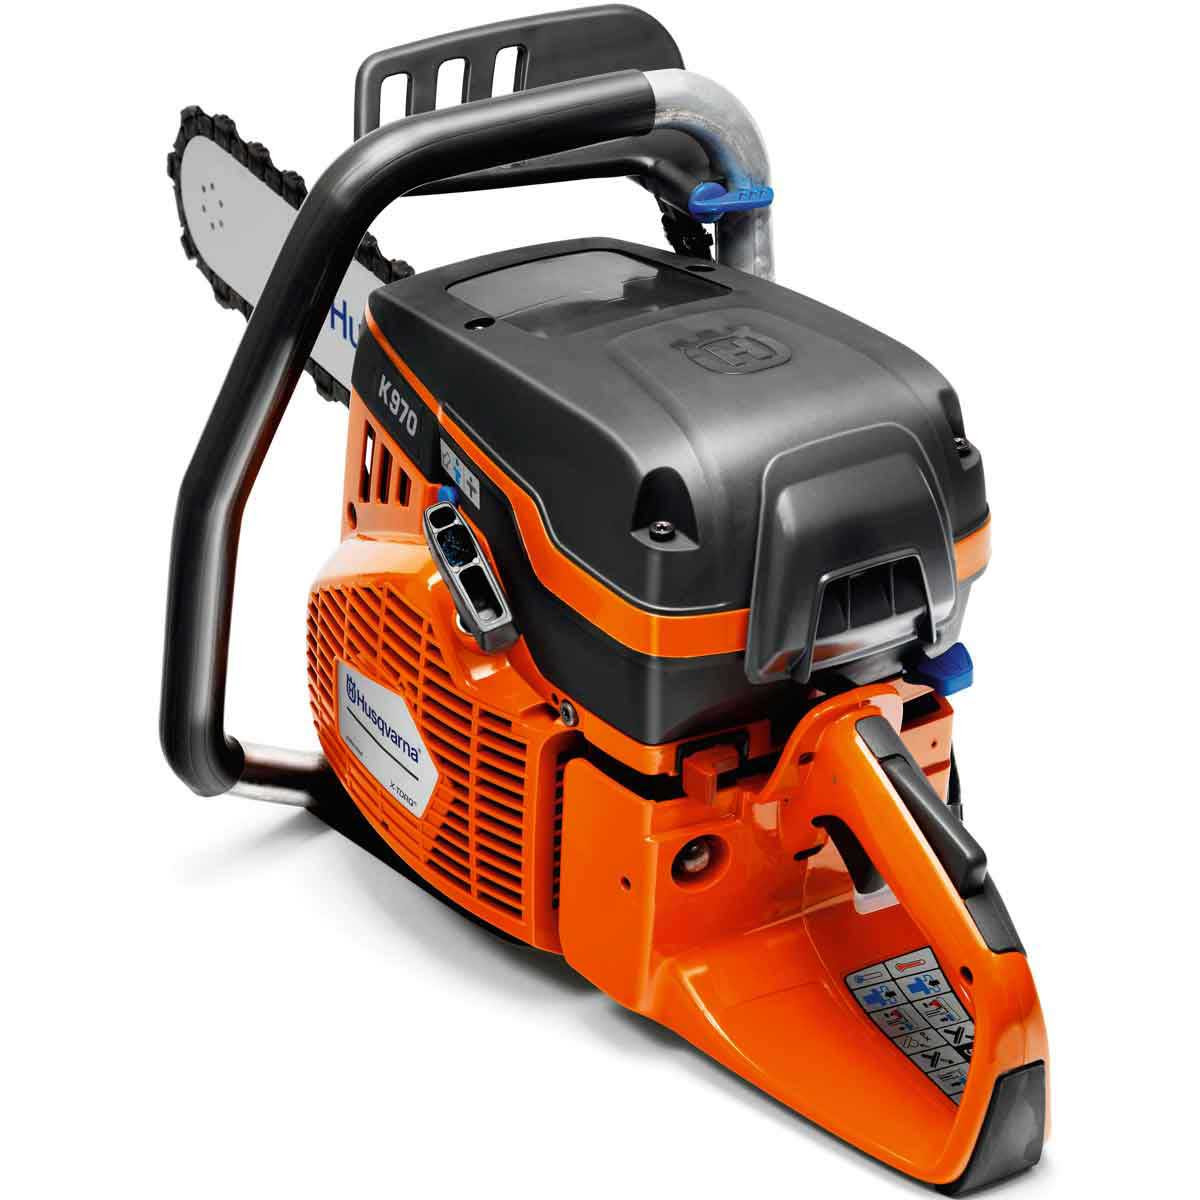 k970 concrete chainsaw,